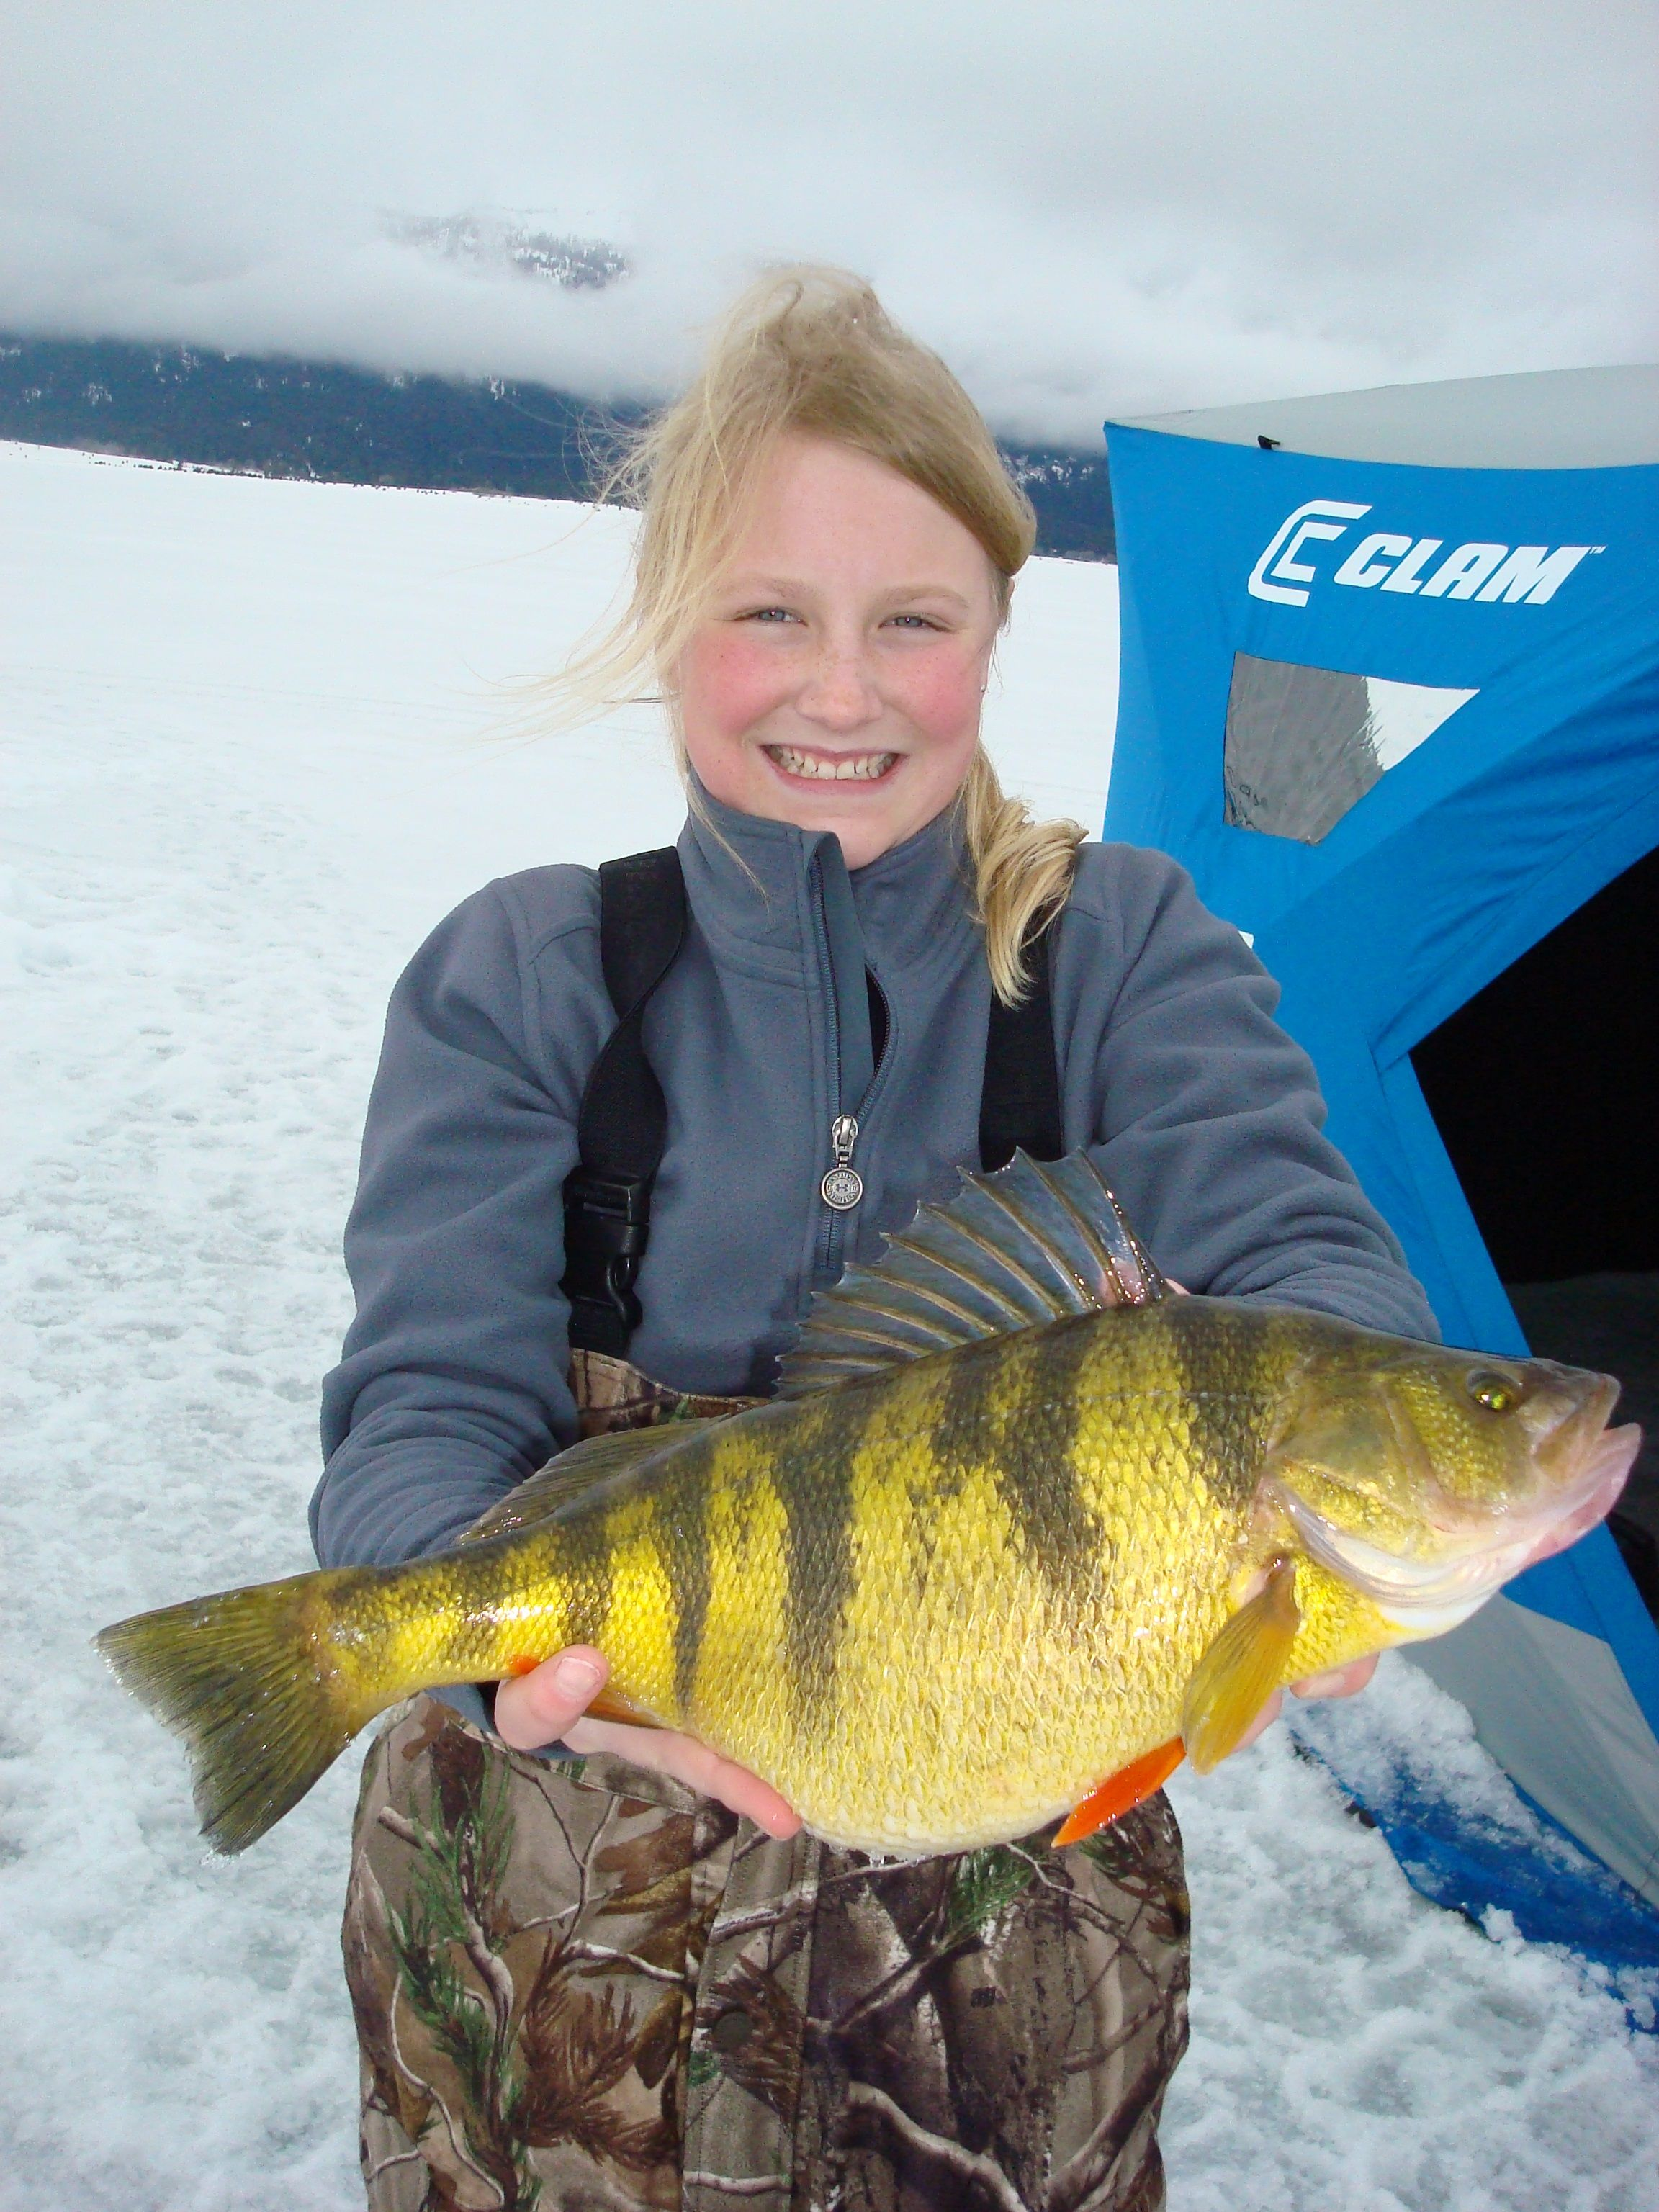 World Record Perch- #girlsrule!!! How many benchmarks can someone make in one event!?! And I usually tease people that catch perch!